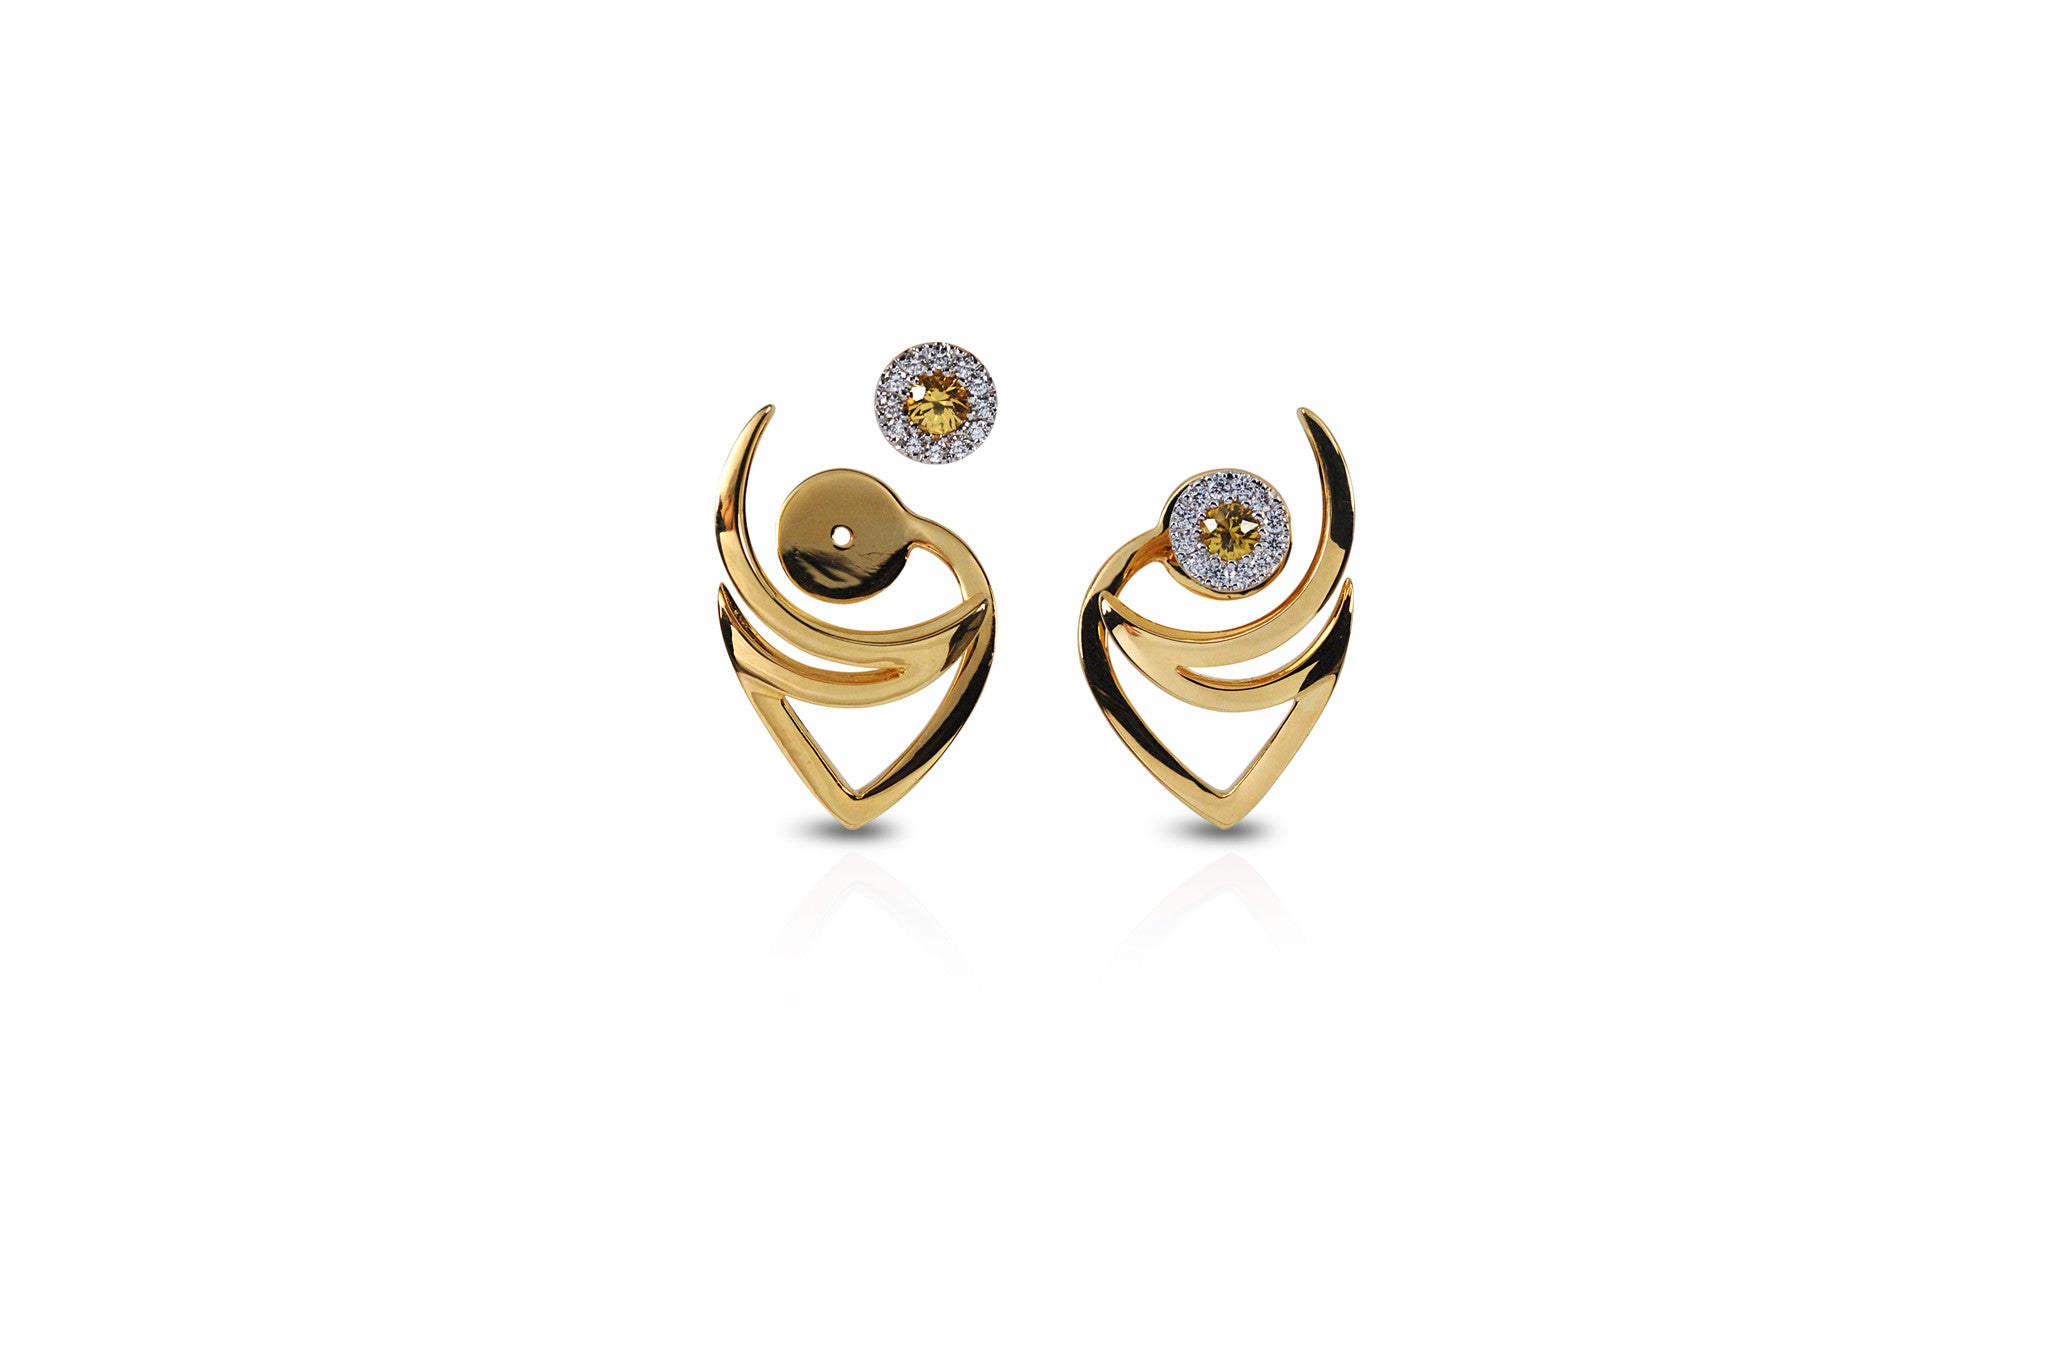 f halo gold stud yellow white earrings jewelry di with diamond sapphire vs